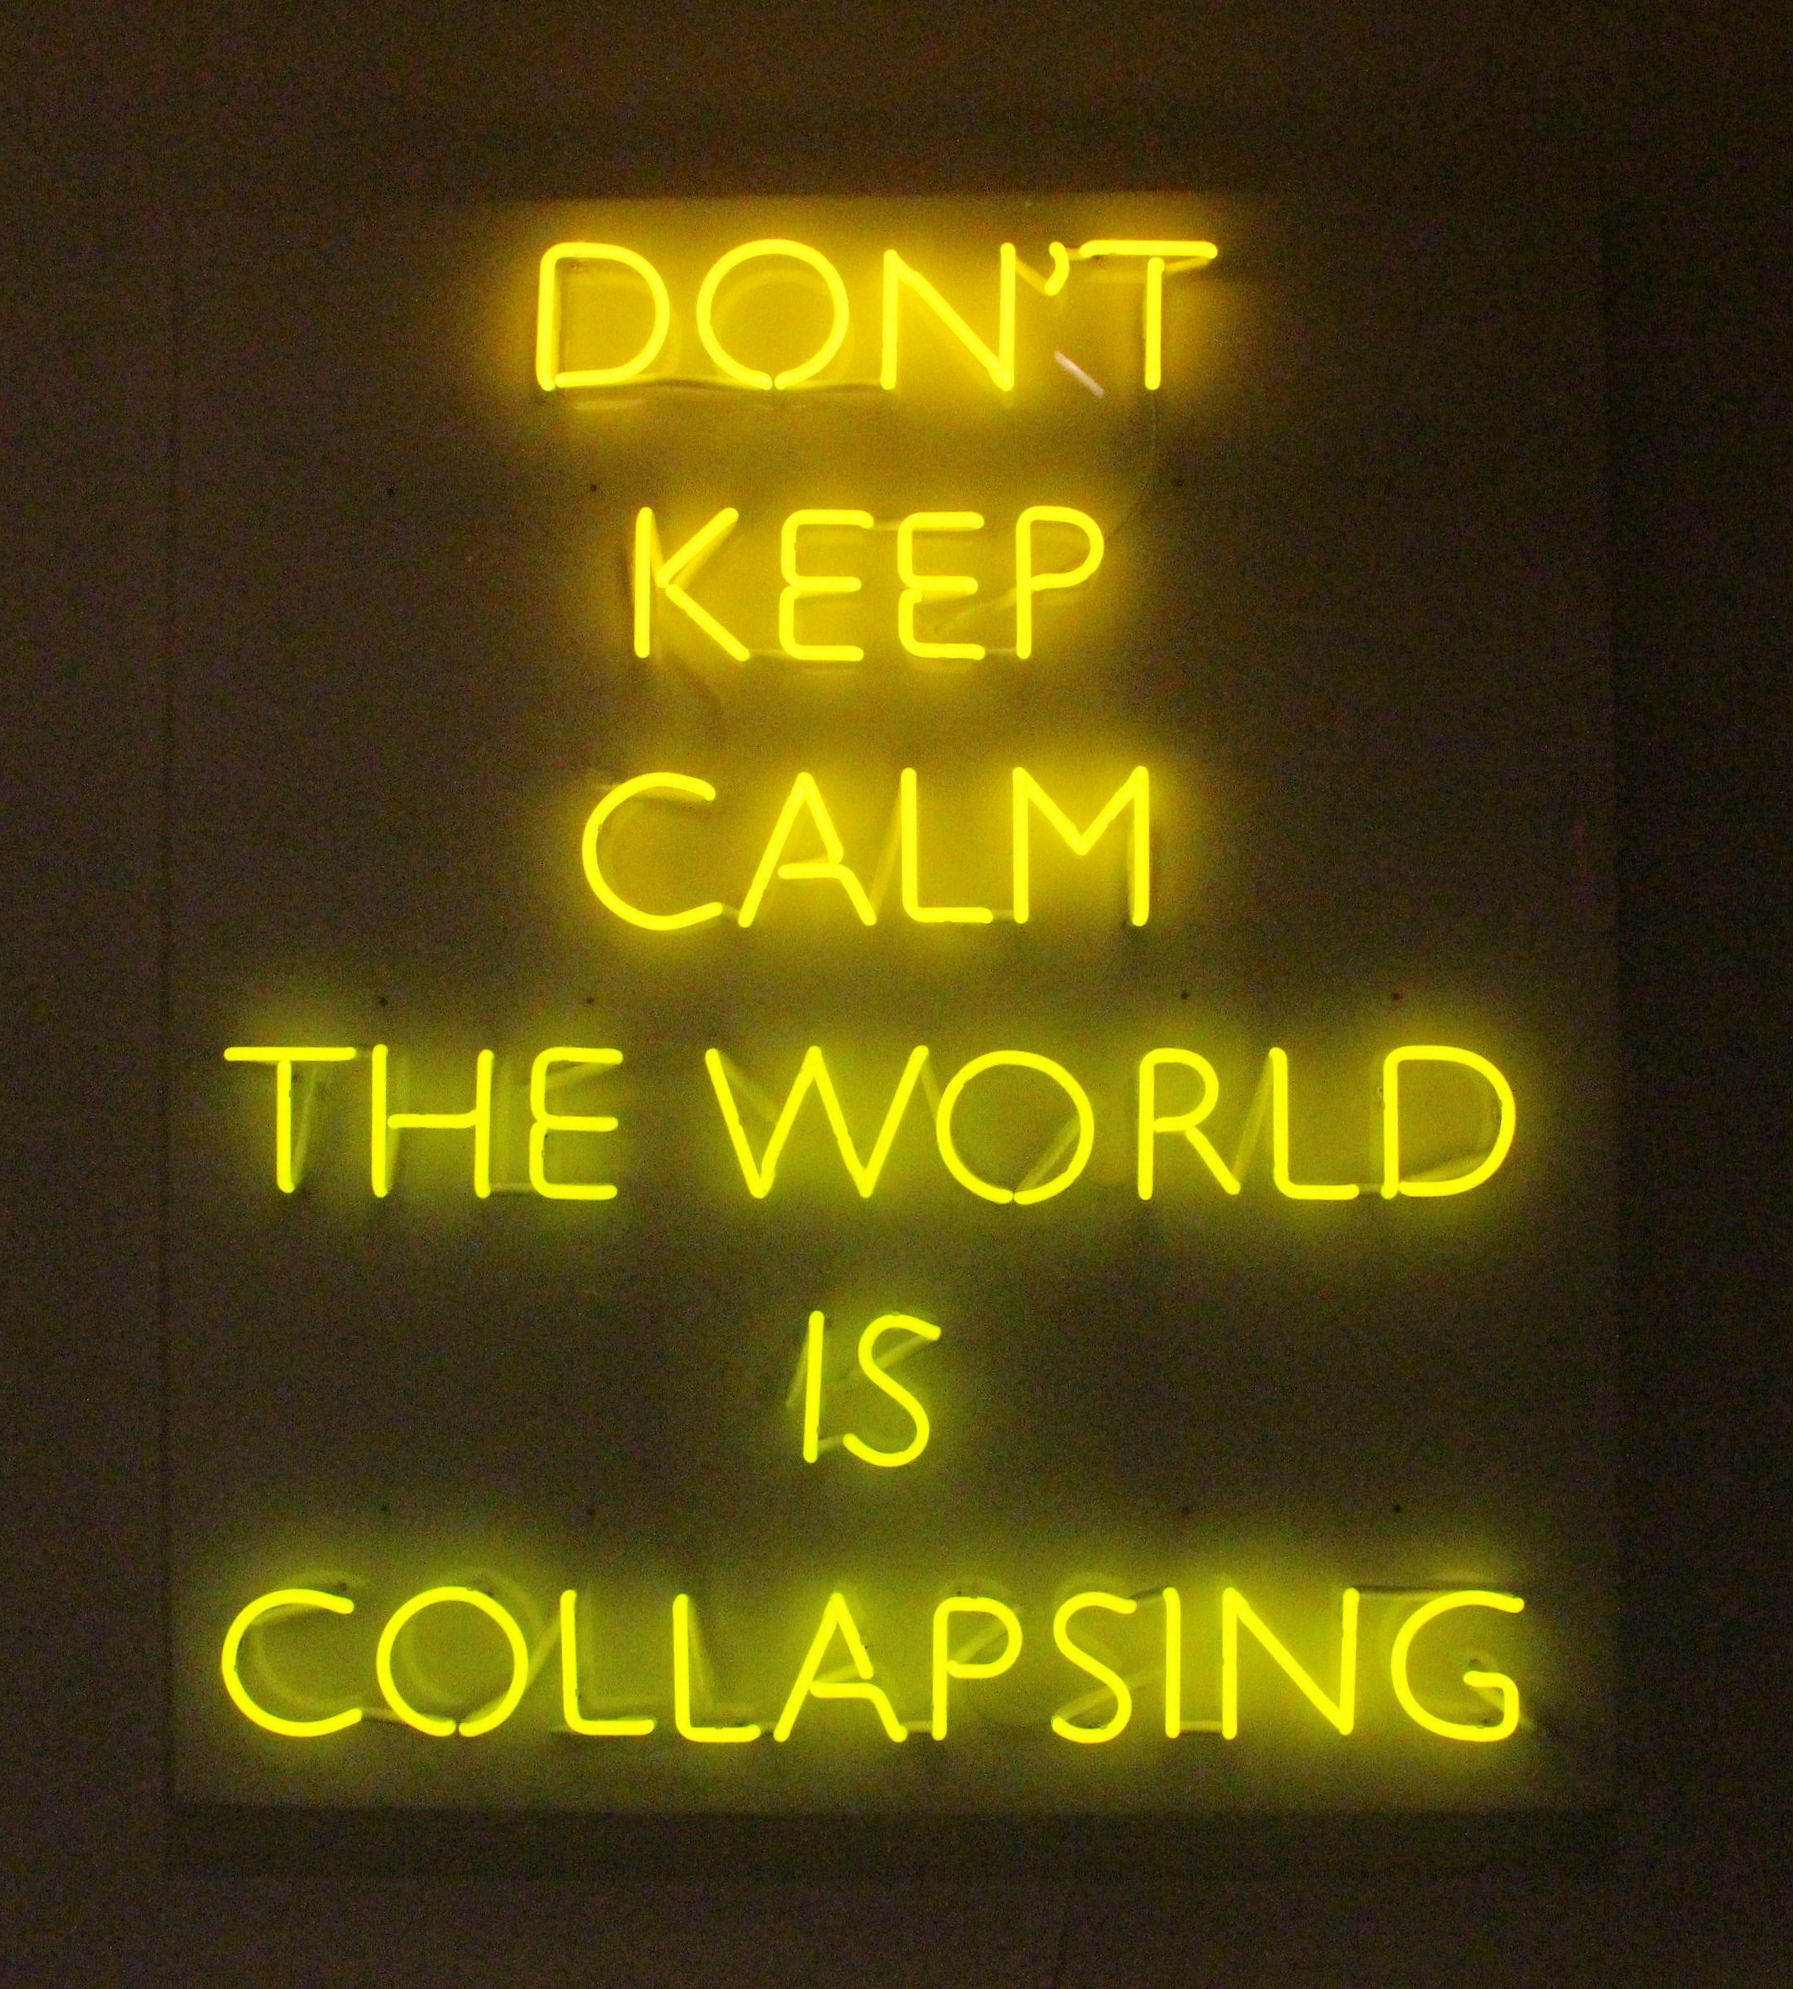 Dont keep calm the world is collapsing ,2016,Color: Novial Gold,Dimensions: 100 cm x 110 cm Edition: 5 + 2AP